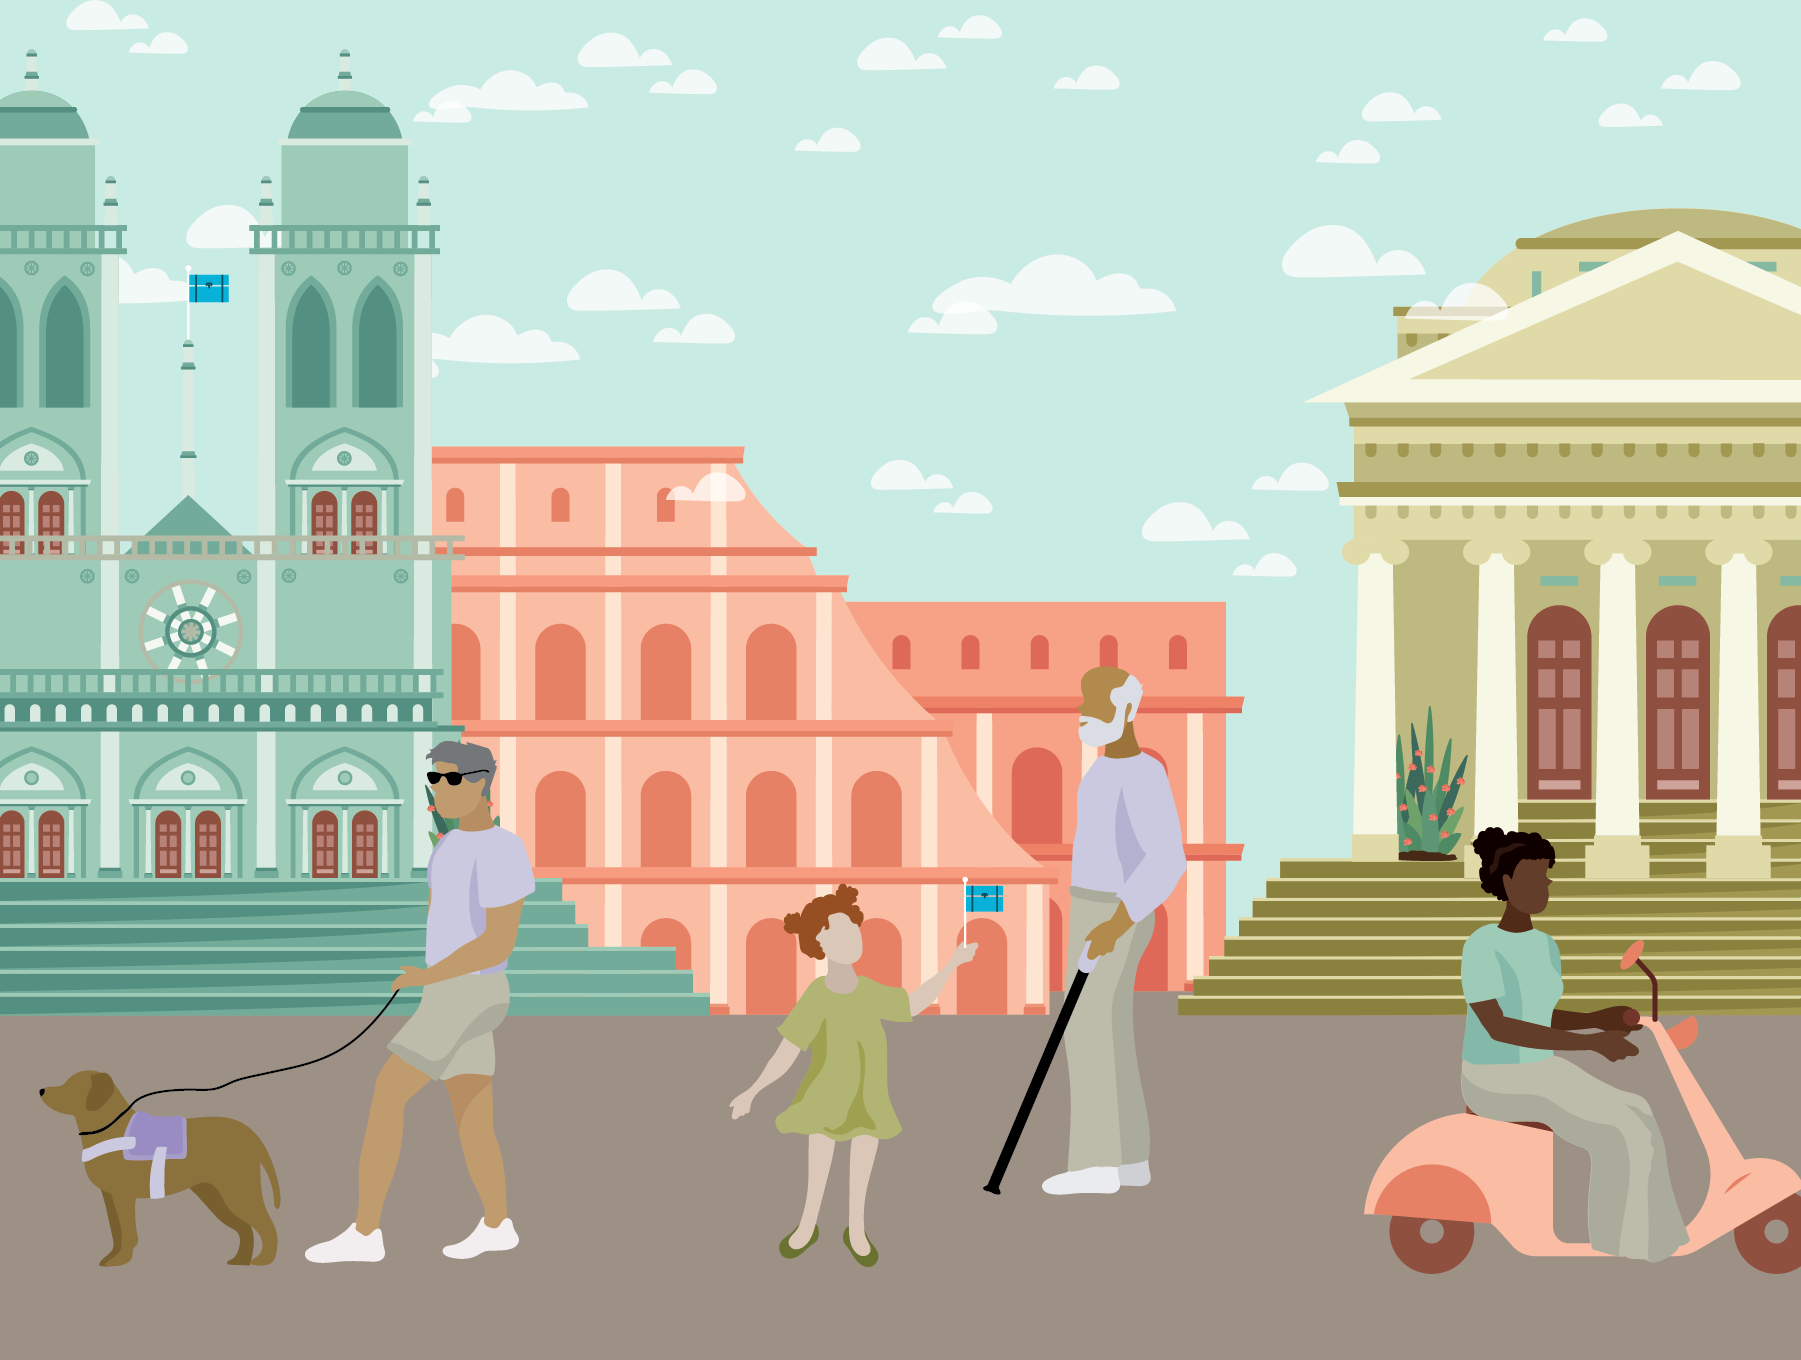 People of various ages and disabilities in the foreground, Roman landmarks in the background. Illustration